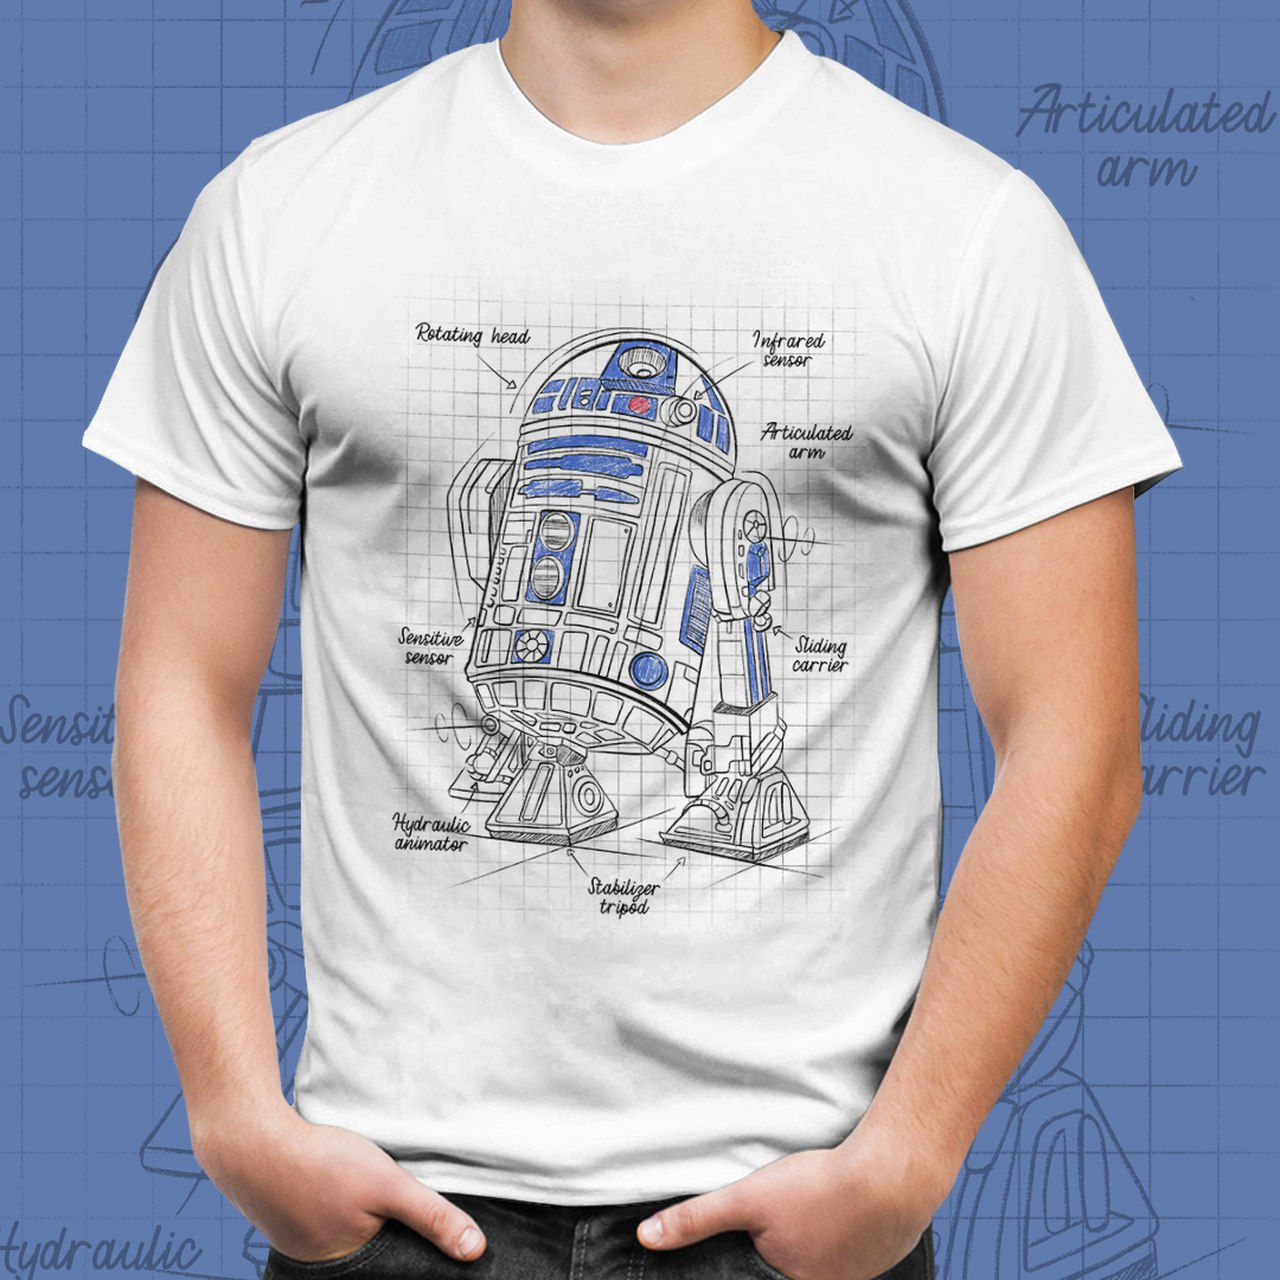 Camiseta Unissex R2-D2: Star Wars